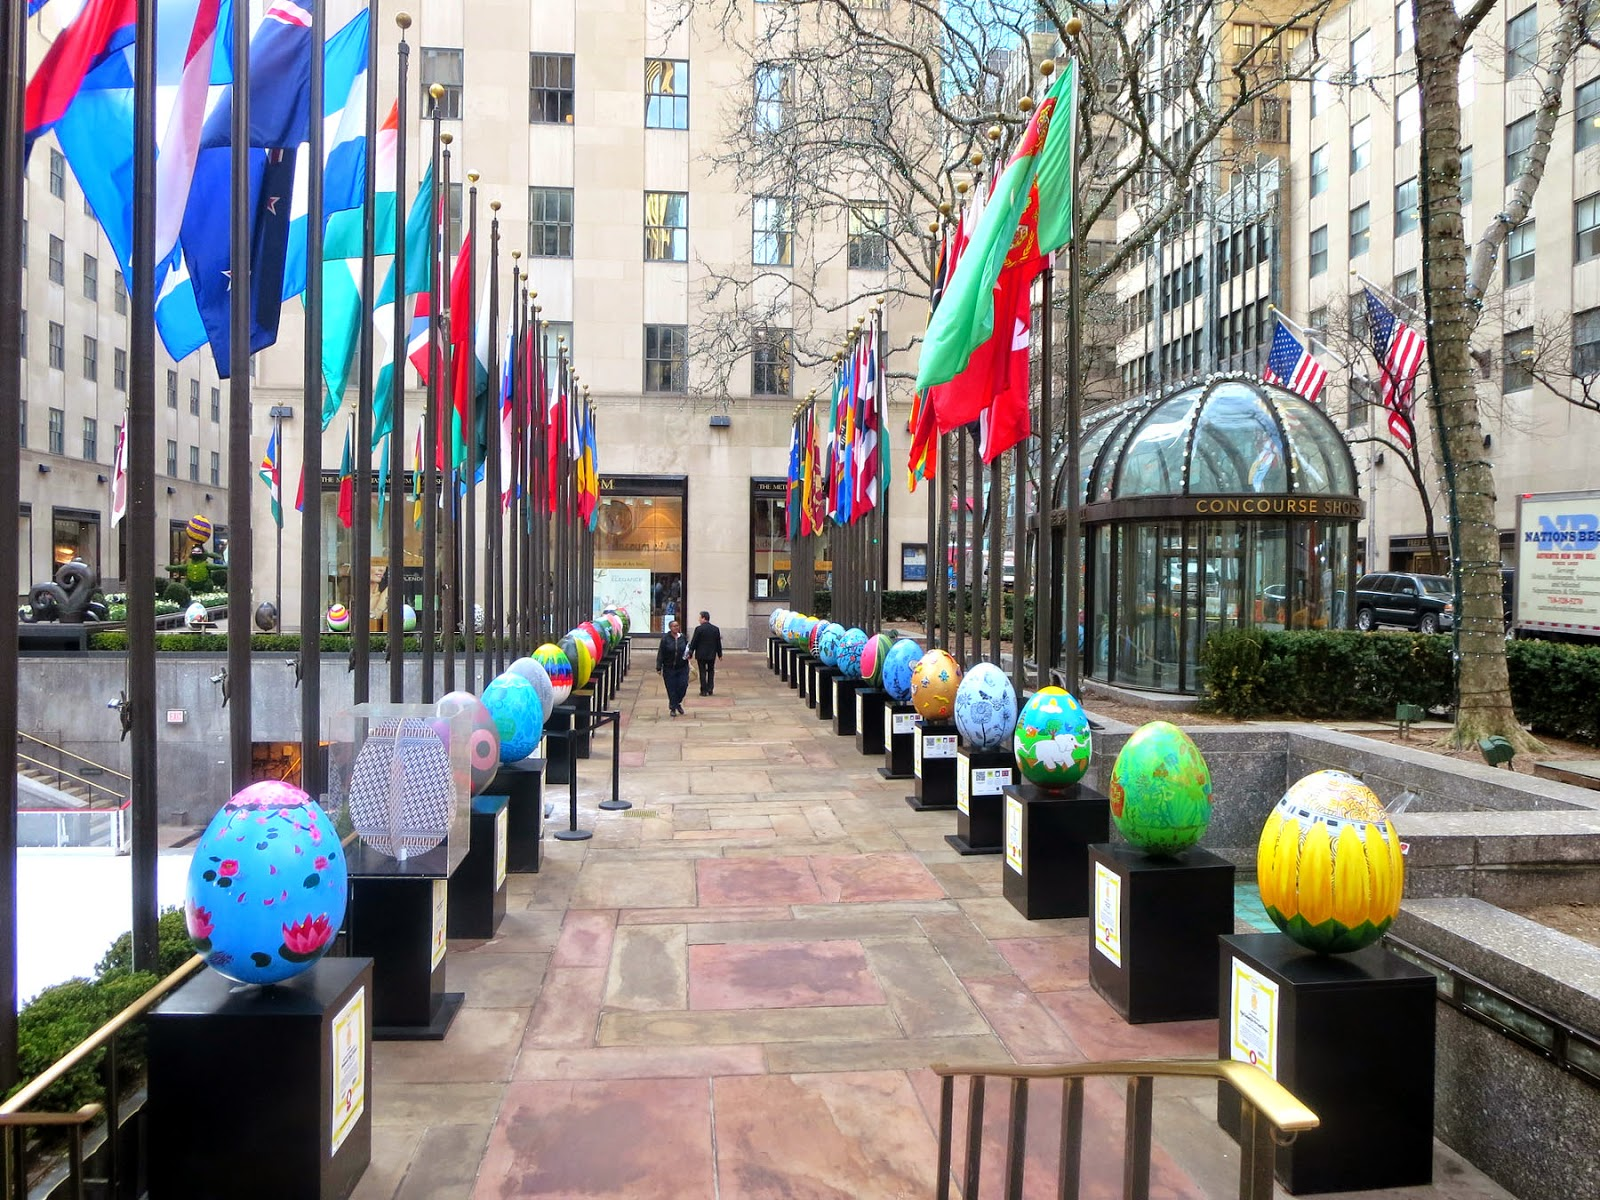 Camera Rockefeller Center : Big apple secrets: rockefeller center :big egg hunt 2014 is over.